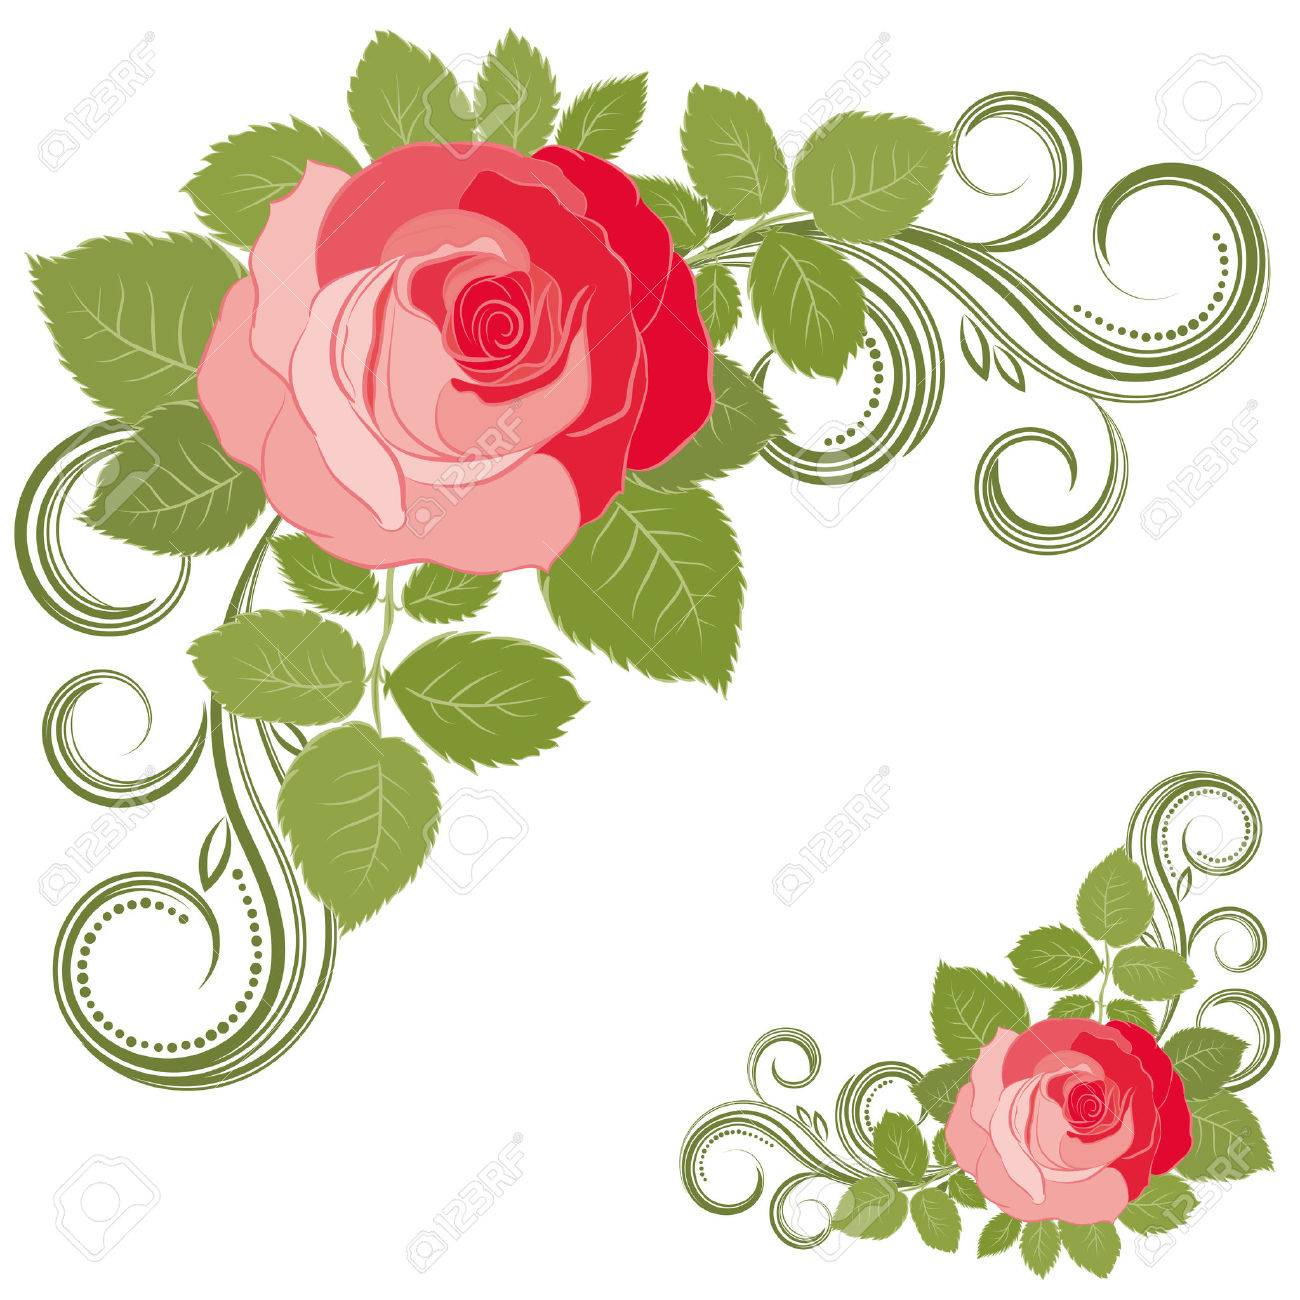 Rose and curls. Stock Vector - 6924573